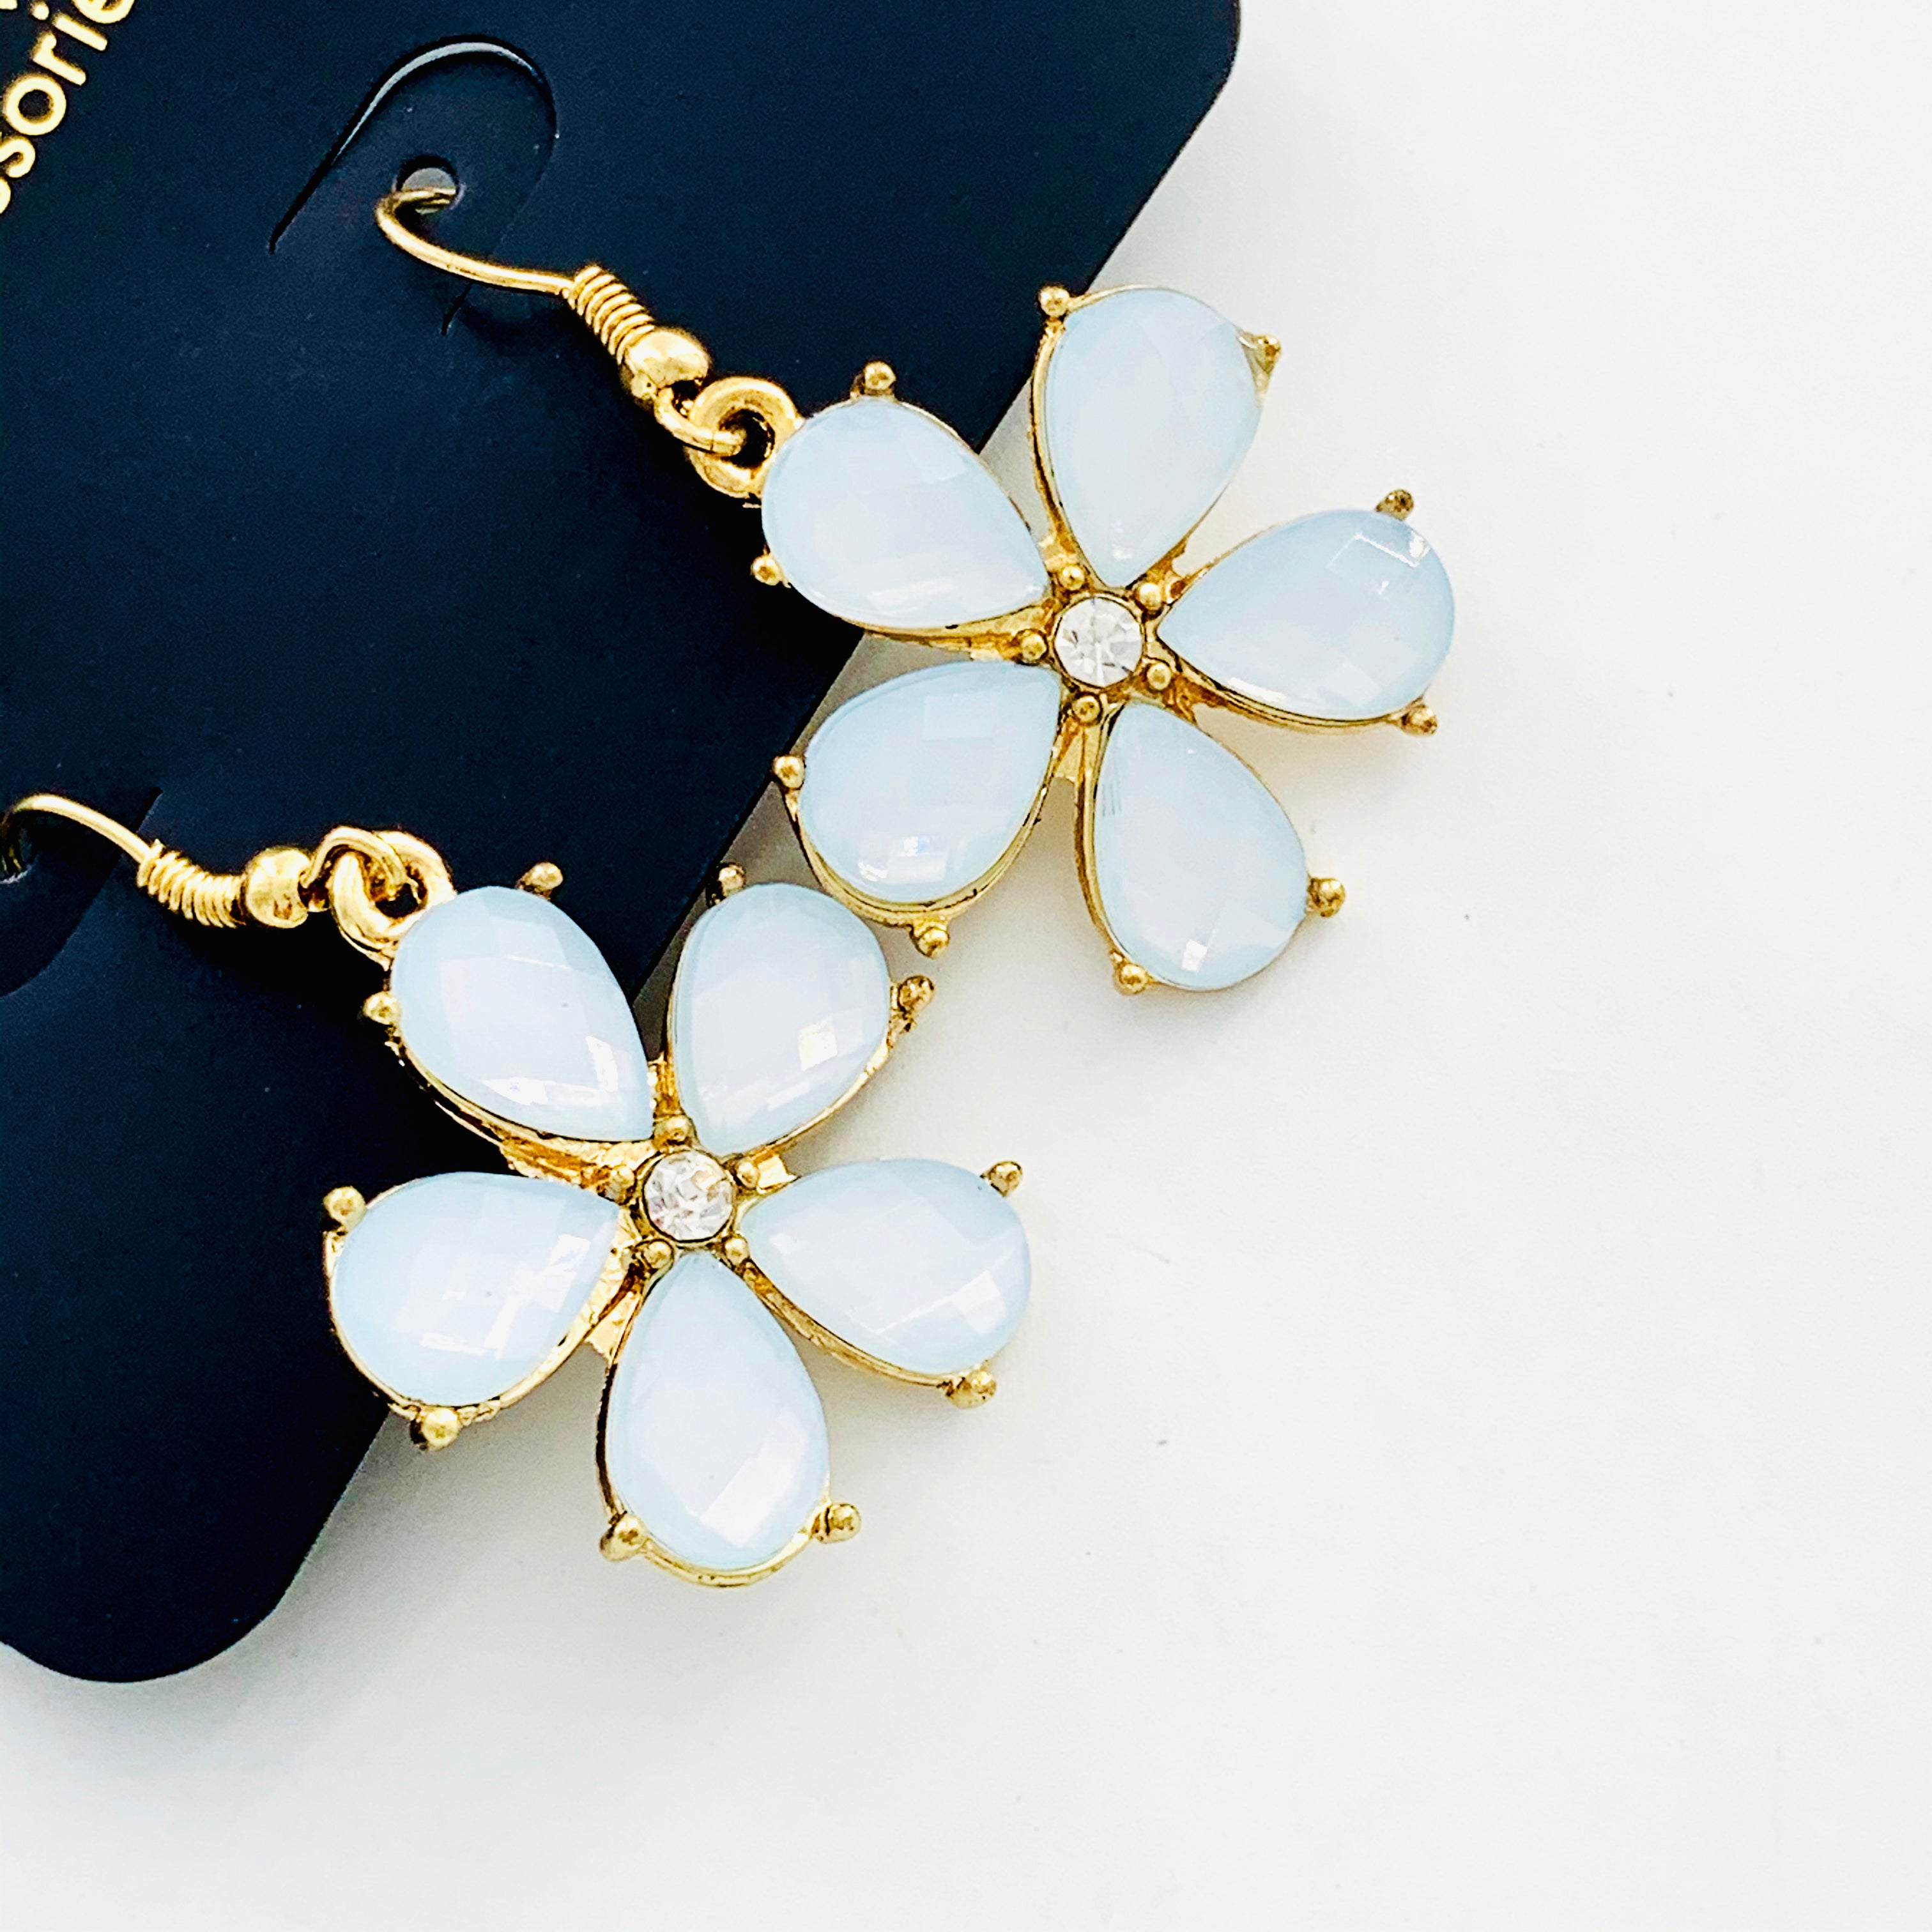 Pale blue flower earrings with teardrop petals